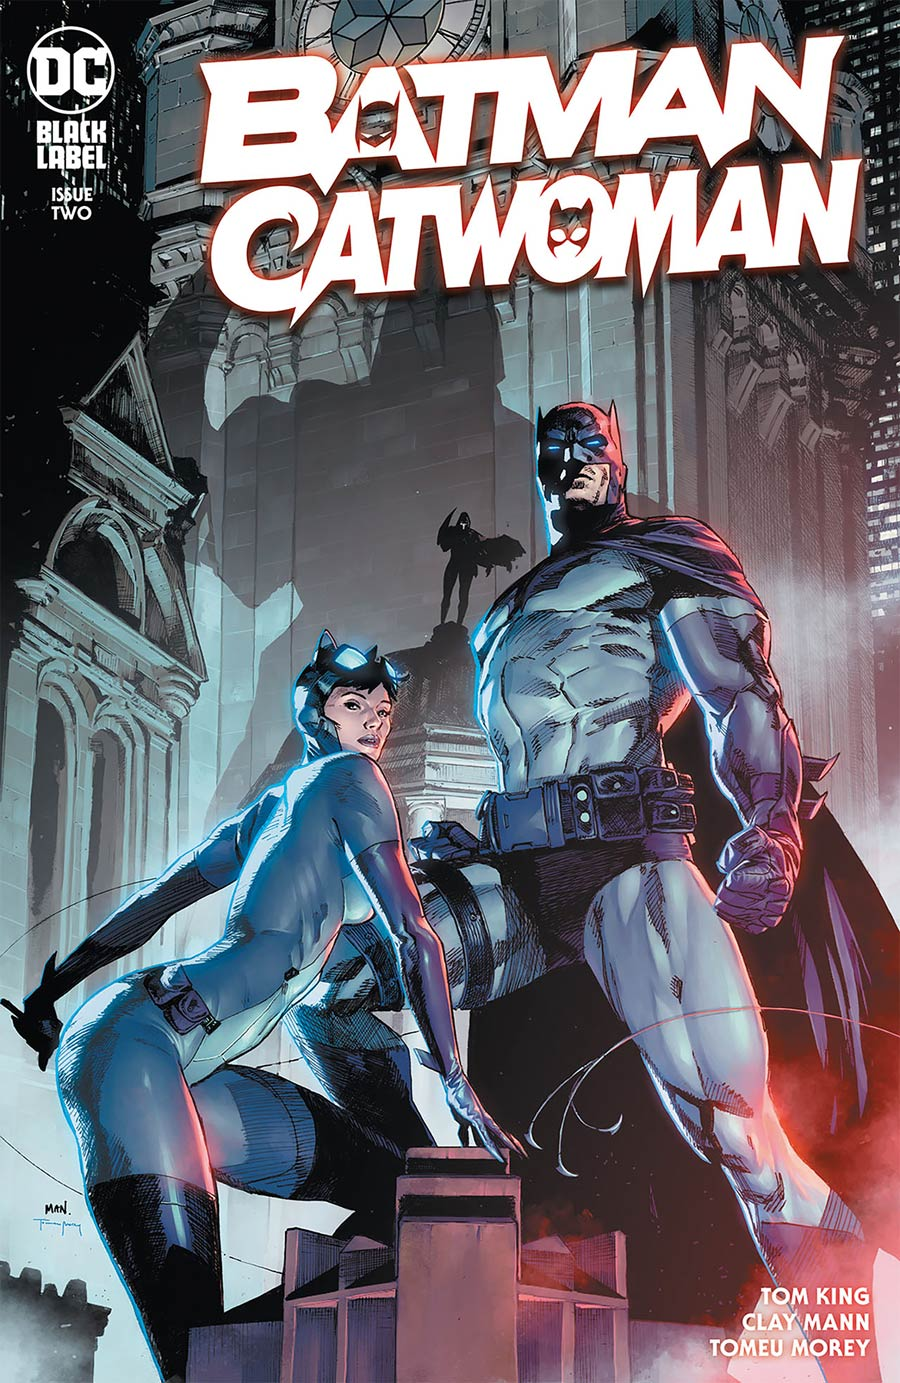 Batman Catwoman #2 Cover E DF Jim Lee & Scott Williams Variant Cover Signed By Scott Williams